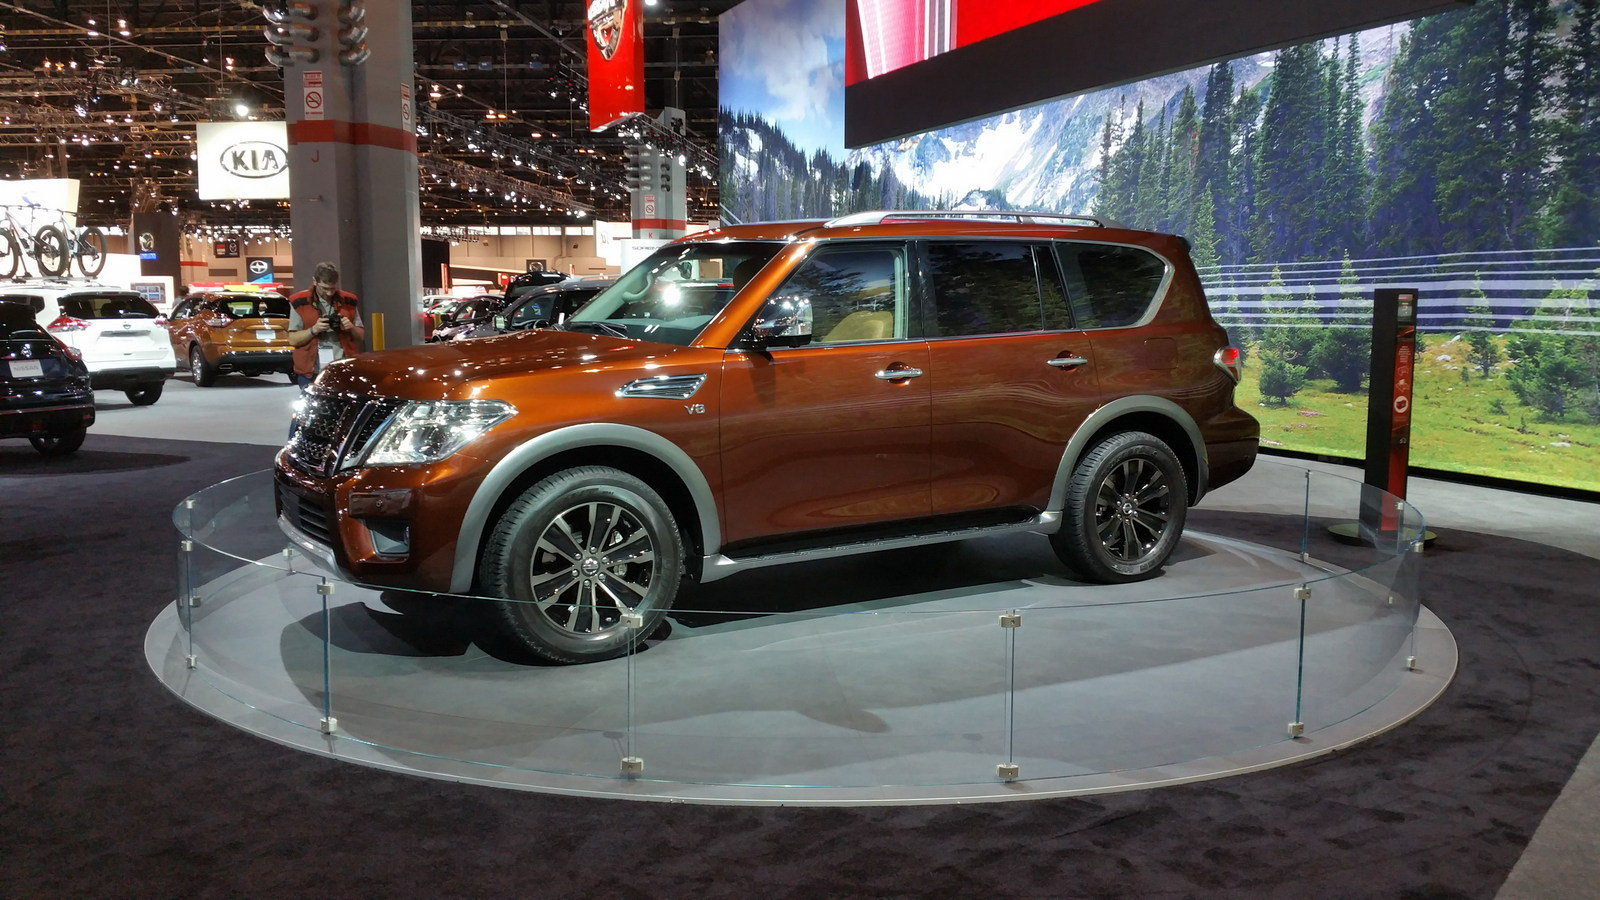 2017 nissan armada picture 666042 truck review top speed. Black Bedroom Furniture Sets. Home Design Ideas